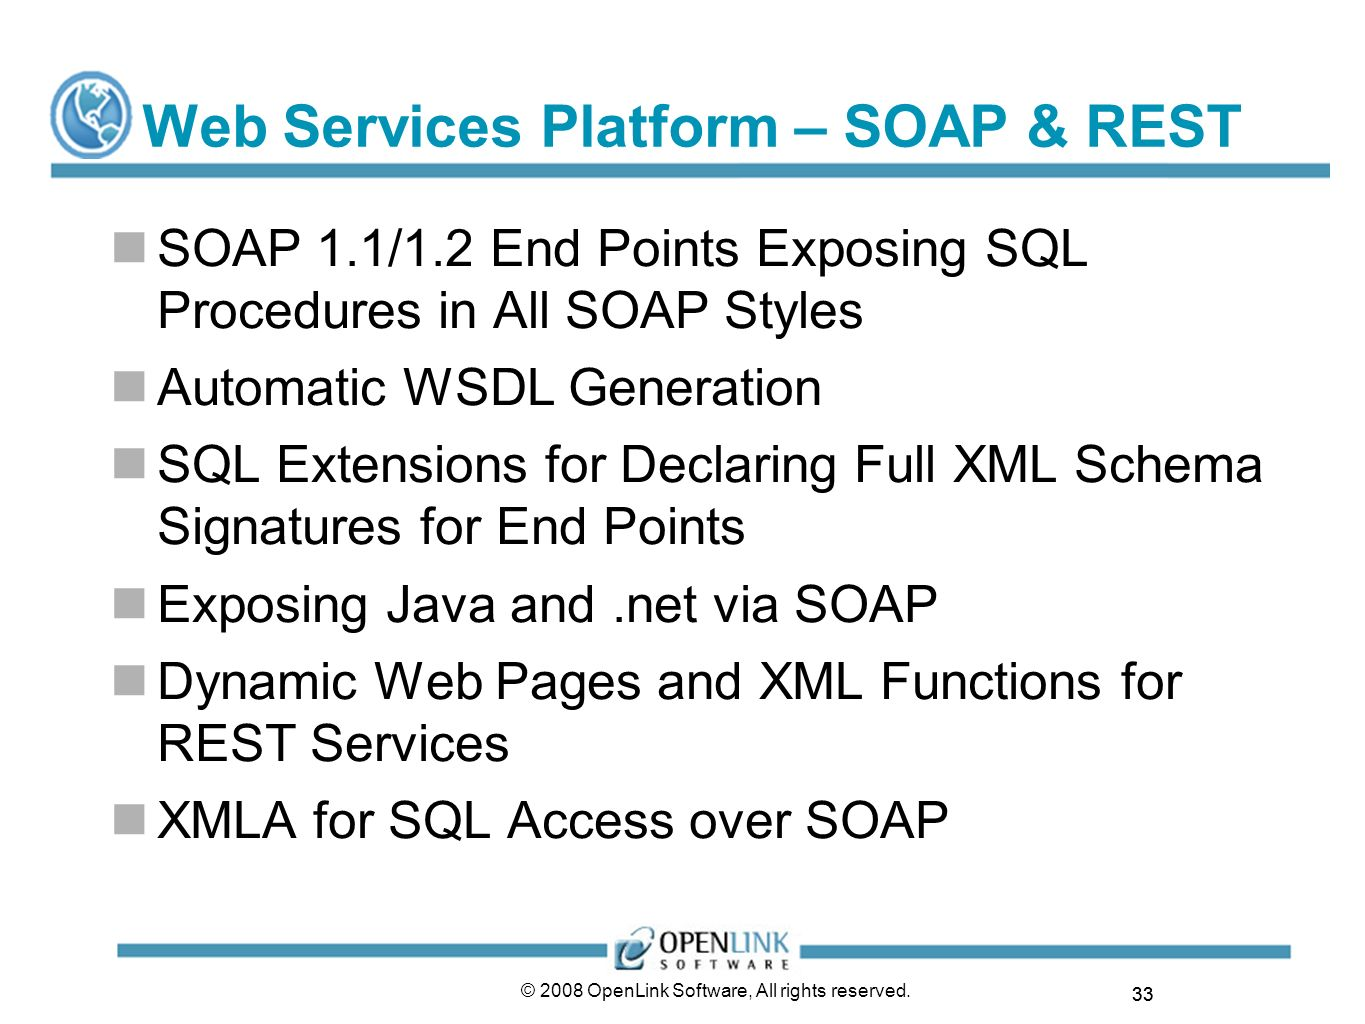 33 © 2008 OpenLink Software, All rights reserved. Web Services Platform – SOAP & REST SOAP 1.1/1.2 End Points Exposing SQL Procedures in All SOAP Styl